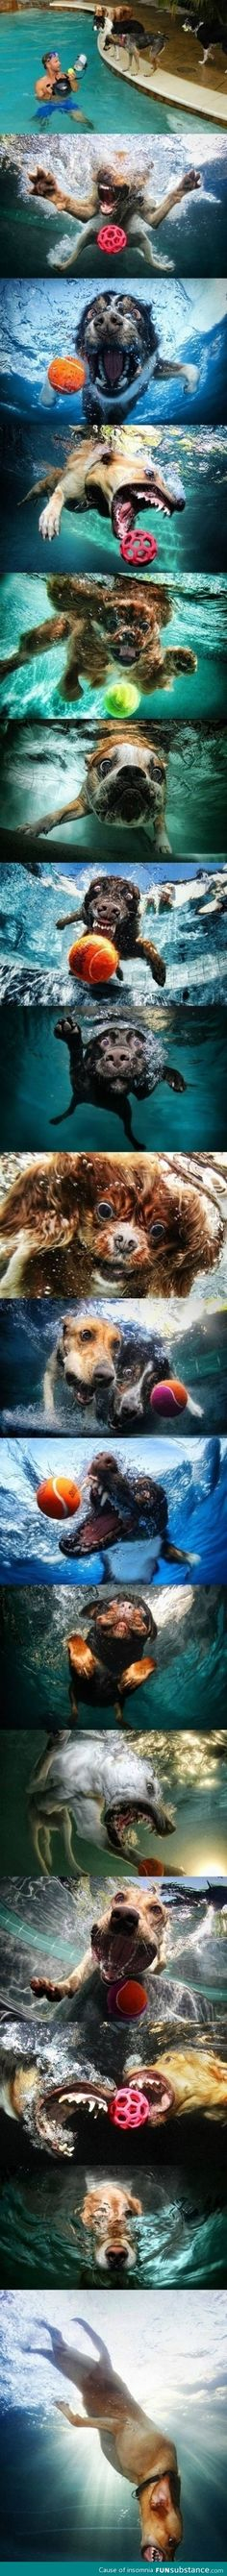 Dogs underwater-April for your under water camera